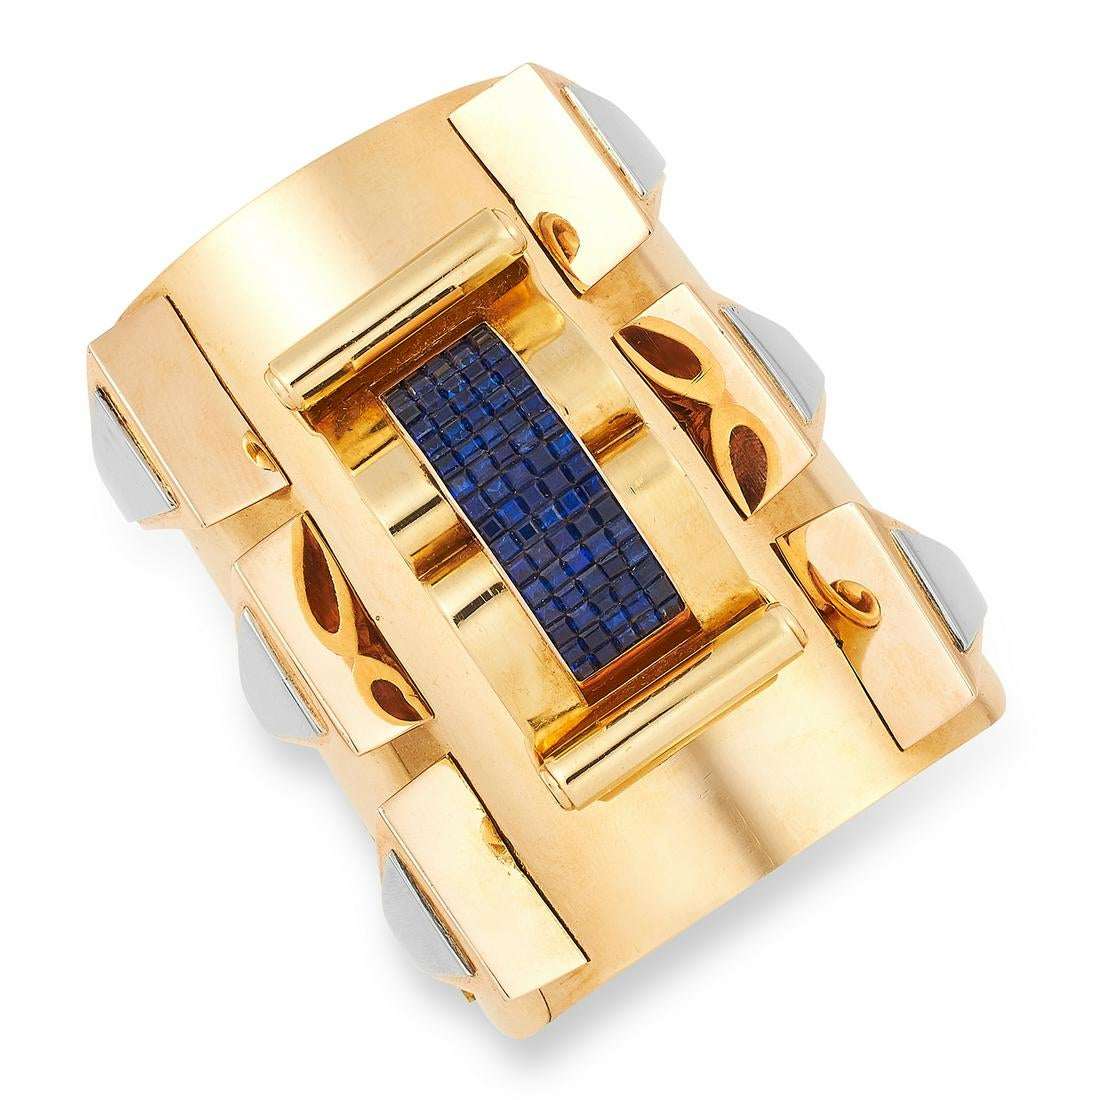 A VINTAGE SAPPHIRE CUFF BANGLE / BRACELET in 18ct yellow gold, the tapering body designed with